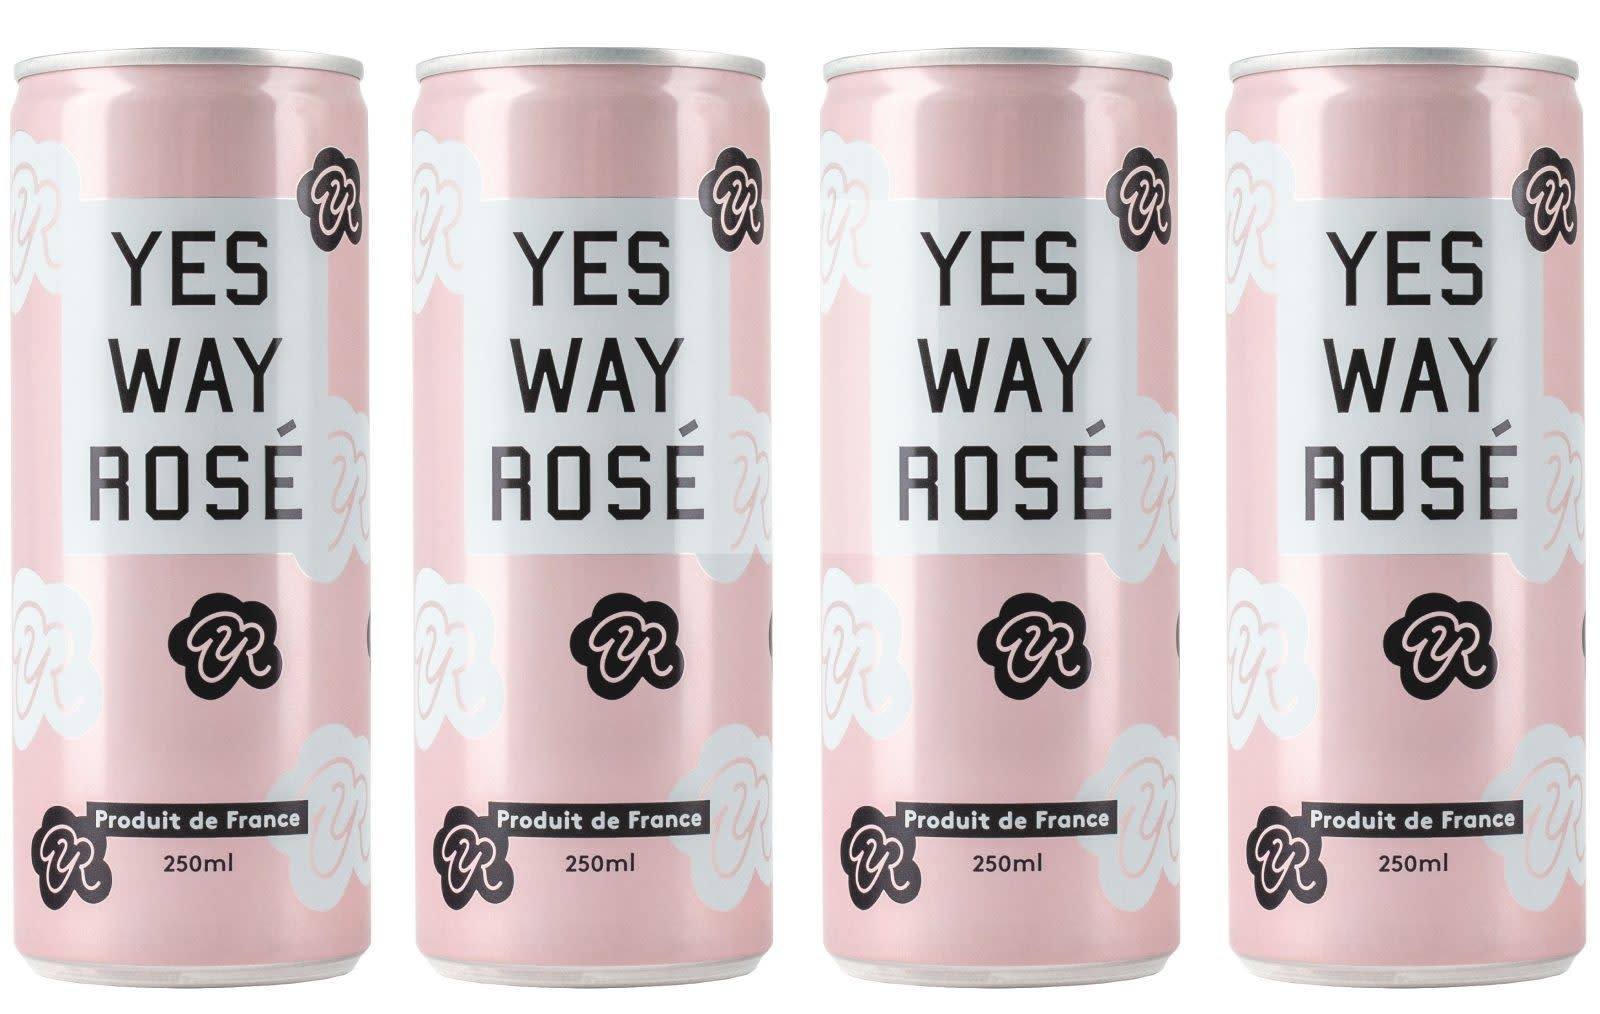 YES WAY ROSE 4 PK CANS